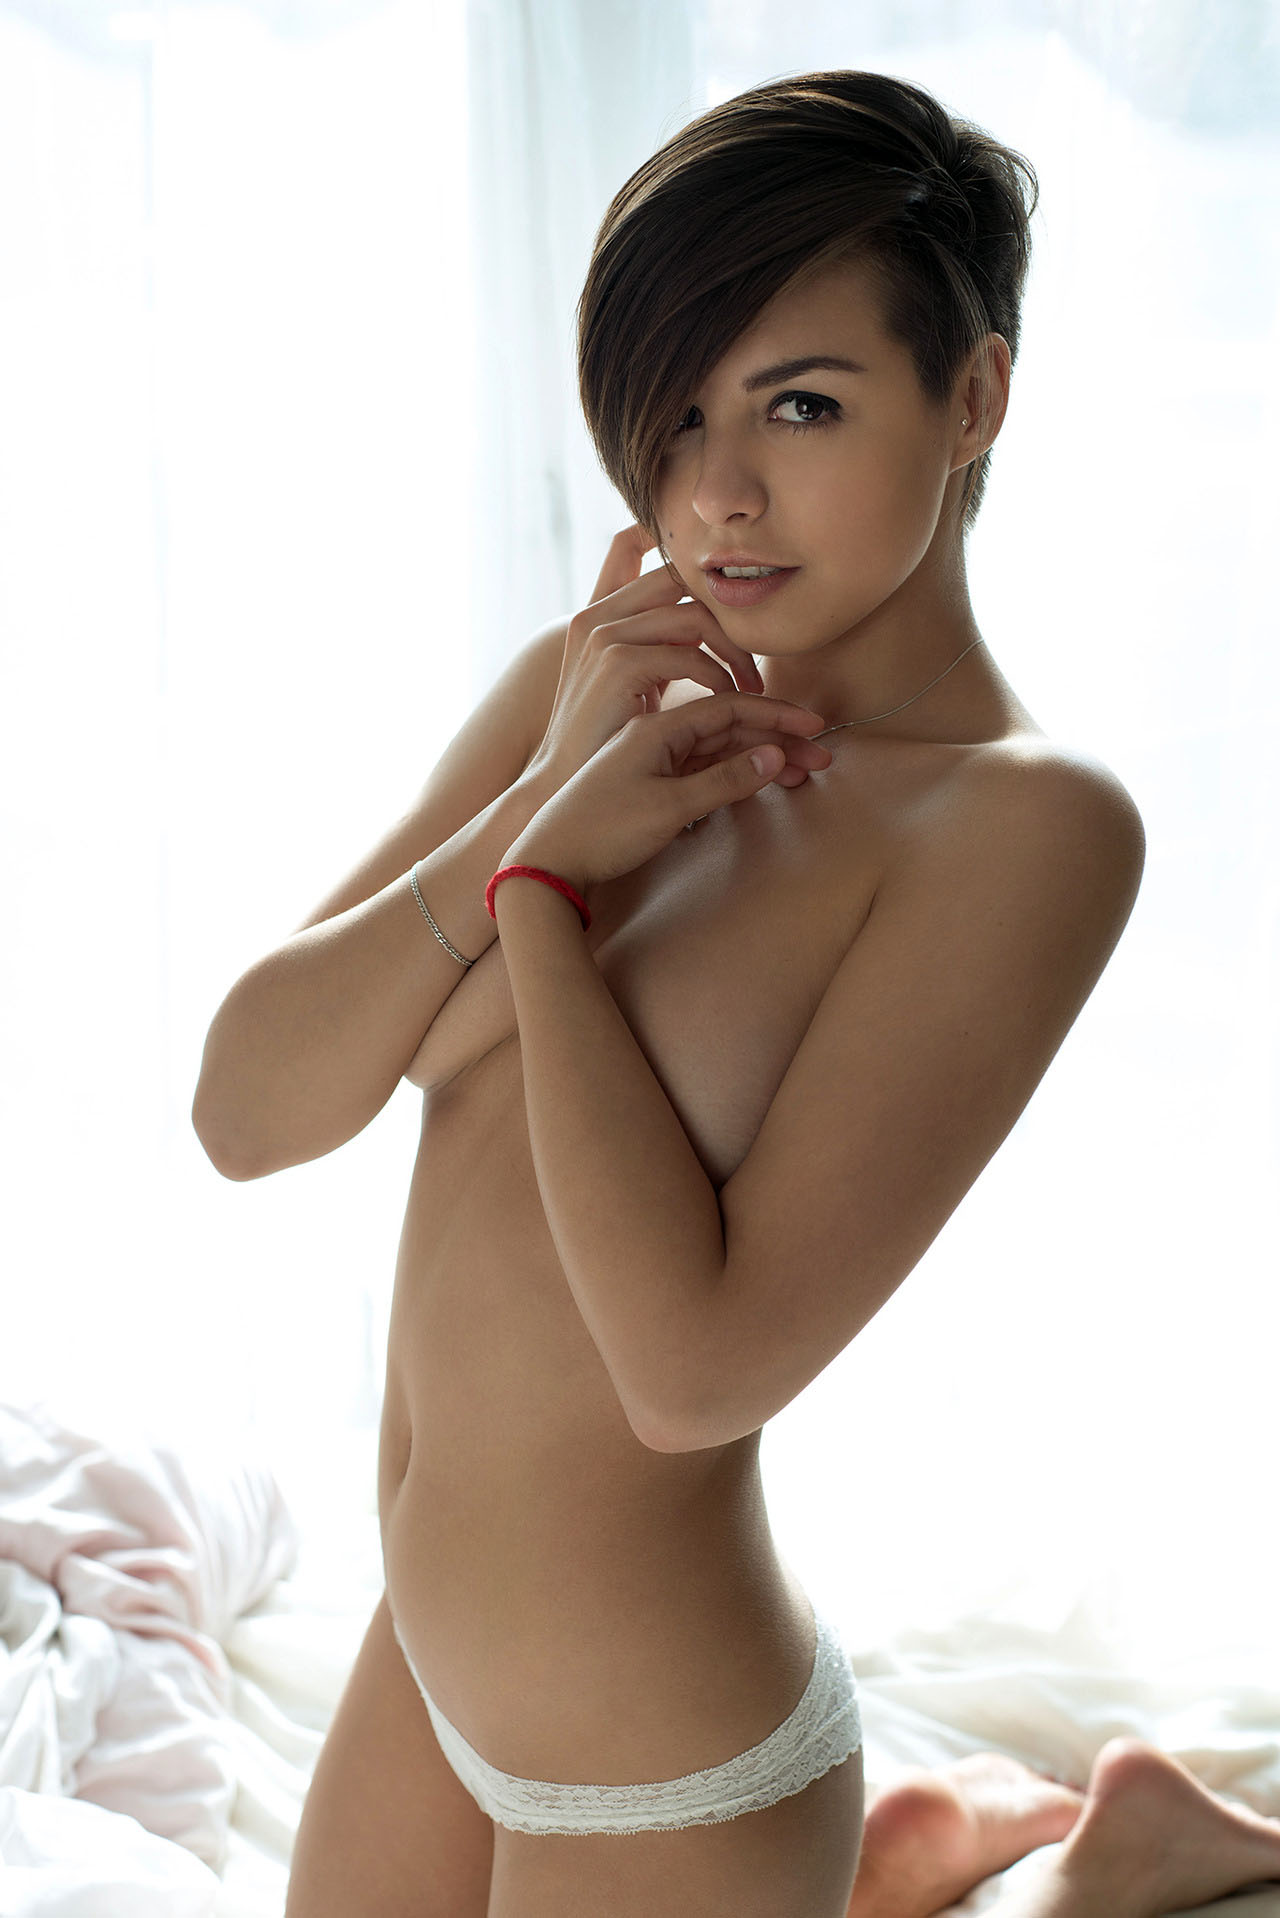 Ladies naked short haired apologise